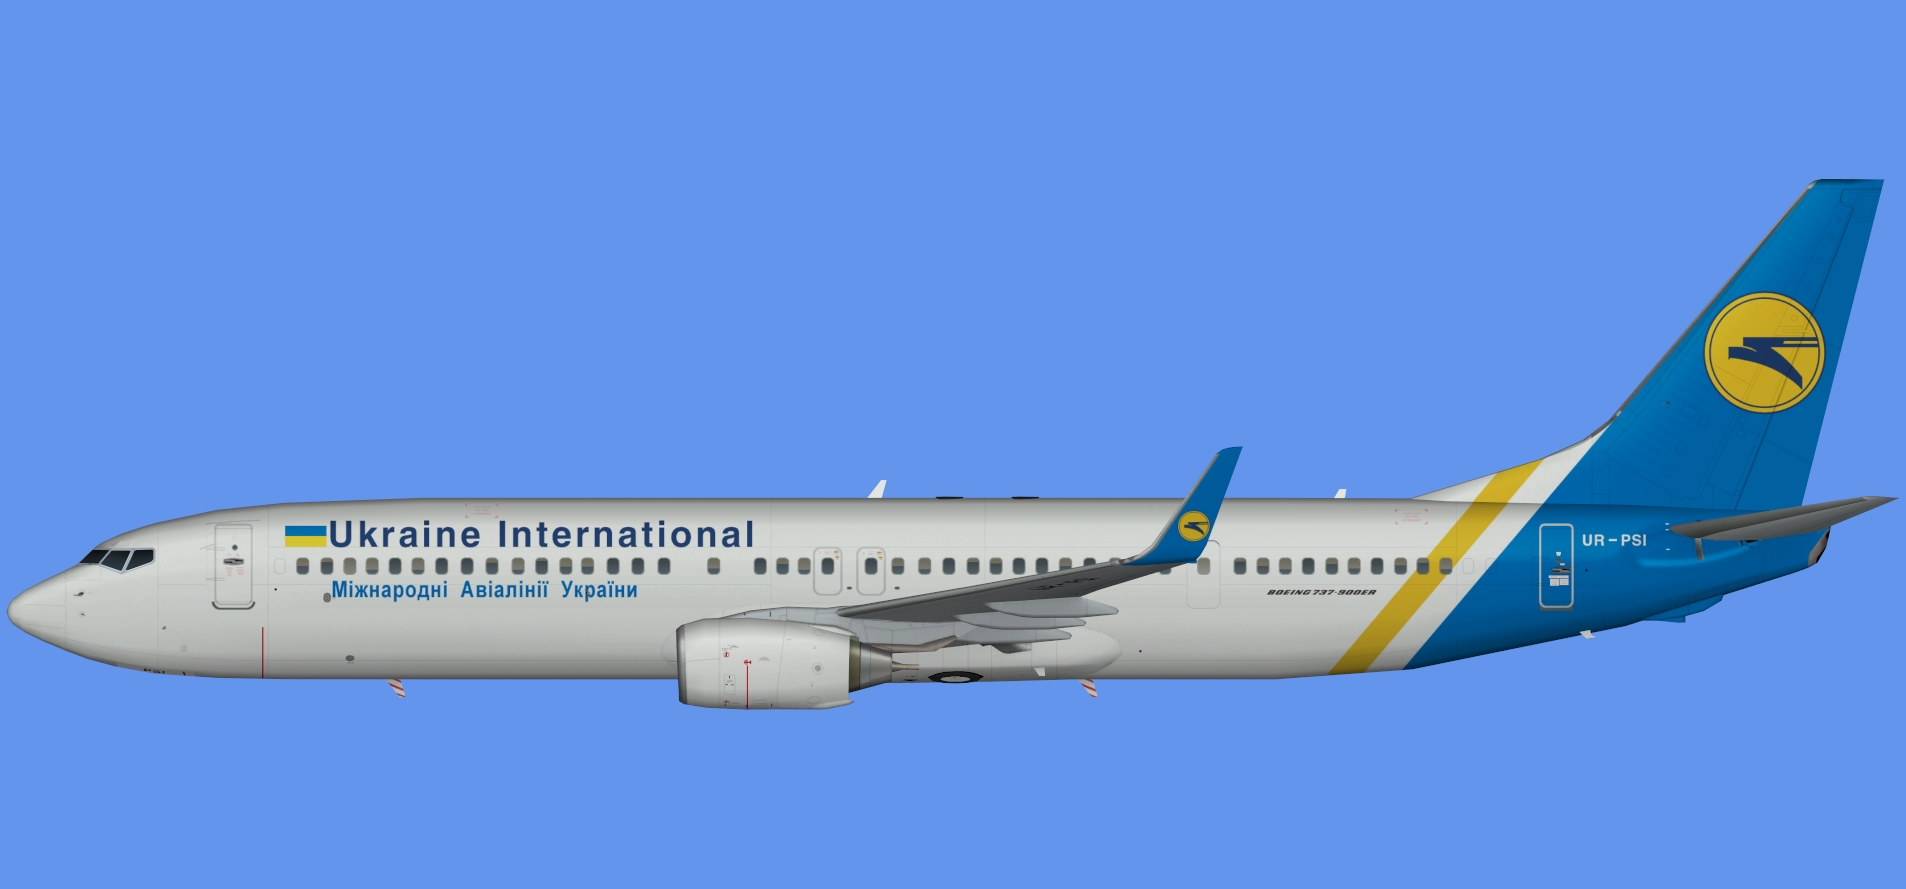 Ukraine International 737-900ER